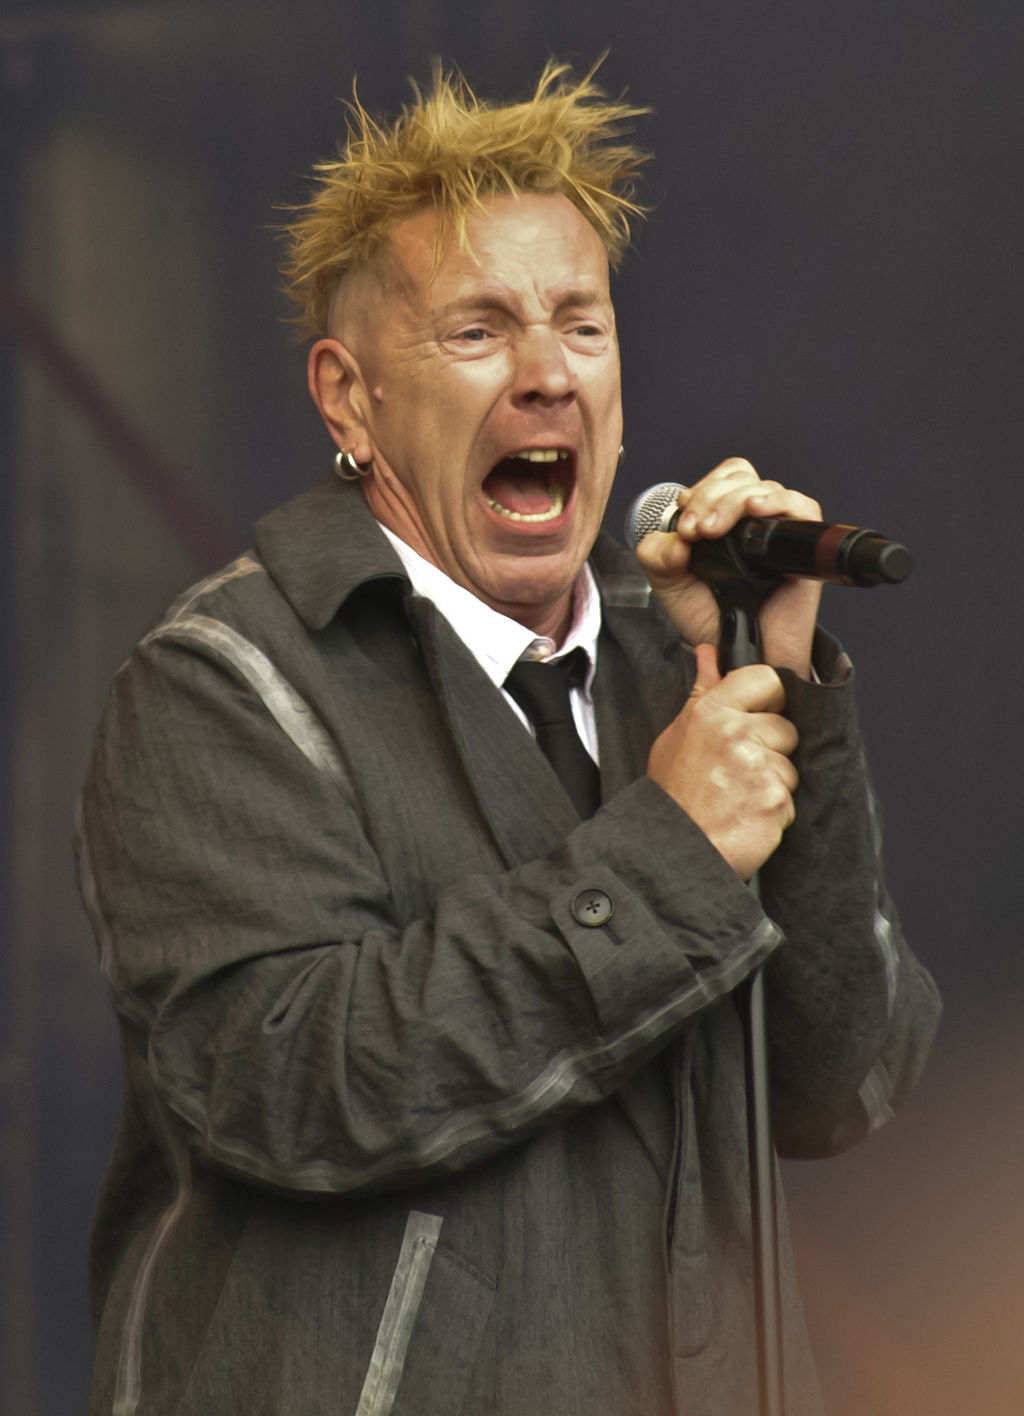 John Lydon performing with Public Image Limited in 2010